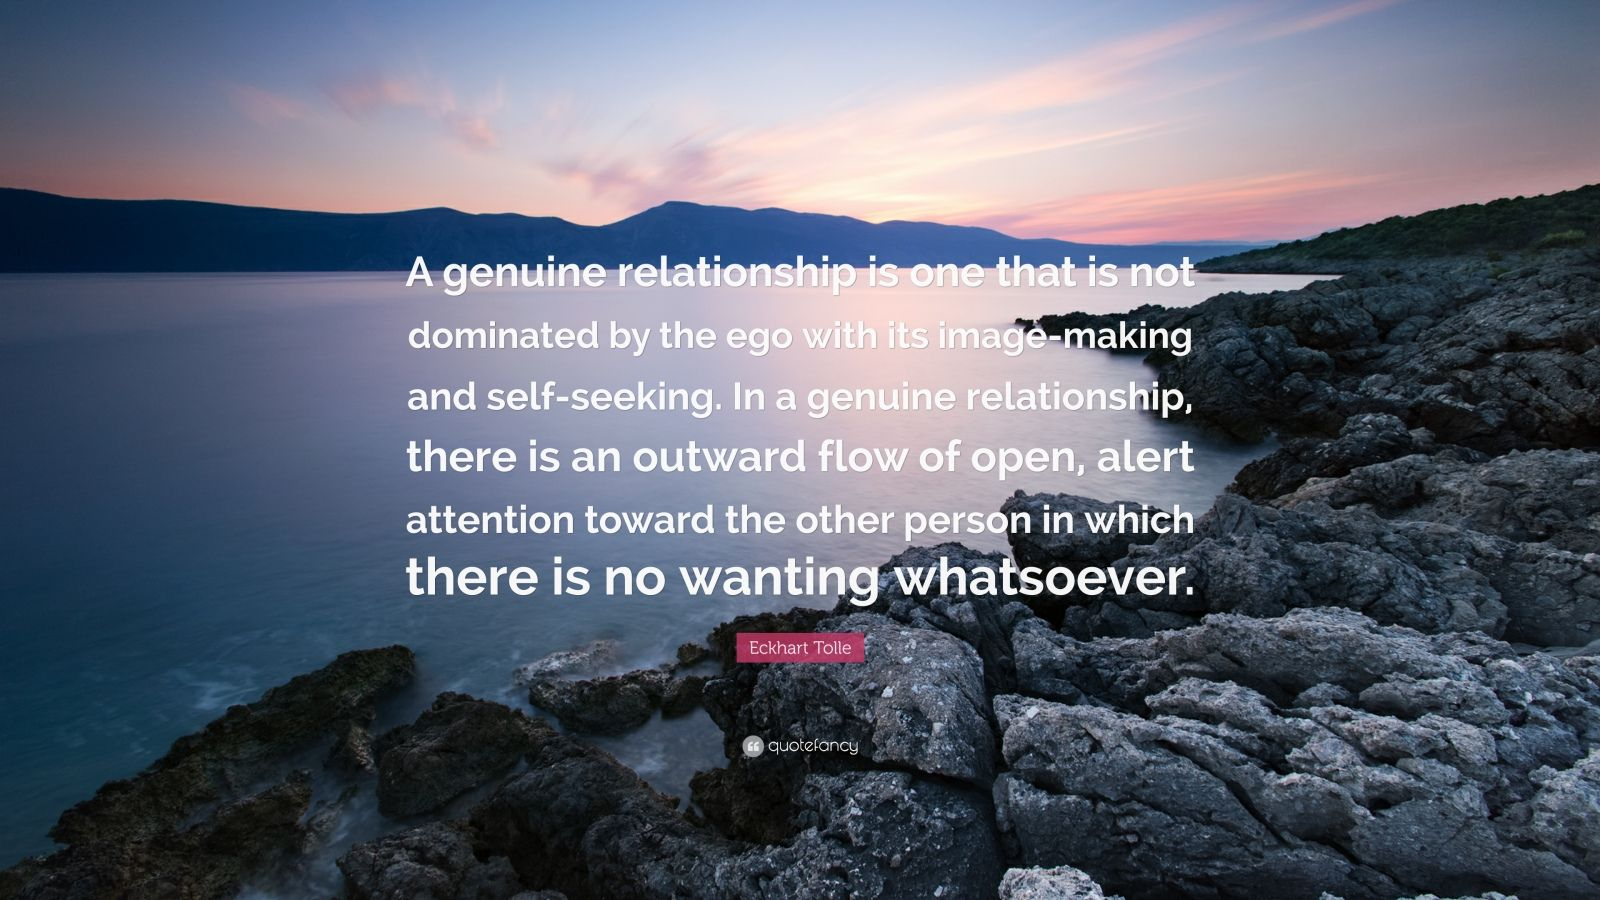 """Eckhart Tolle Quote: """"A genuine relationship is one that is not dominated by the ego with its image-making and self-seeking. In a genuine relationship, there is an outward flow of open, alert attention toward the other person in which there is no wanting whatsoever."""""""